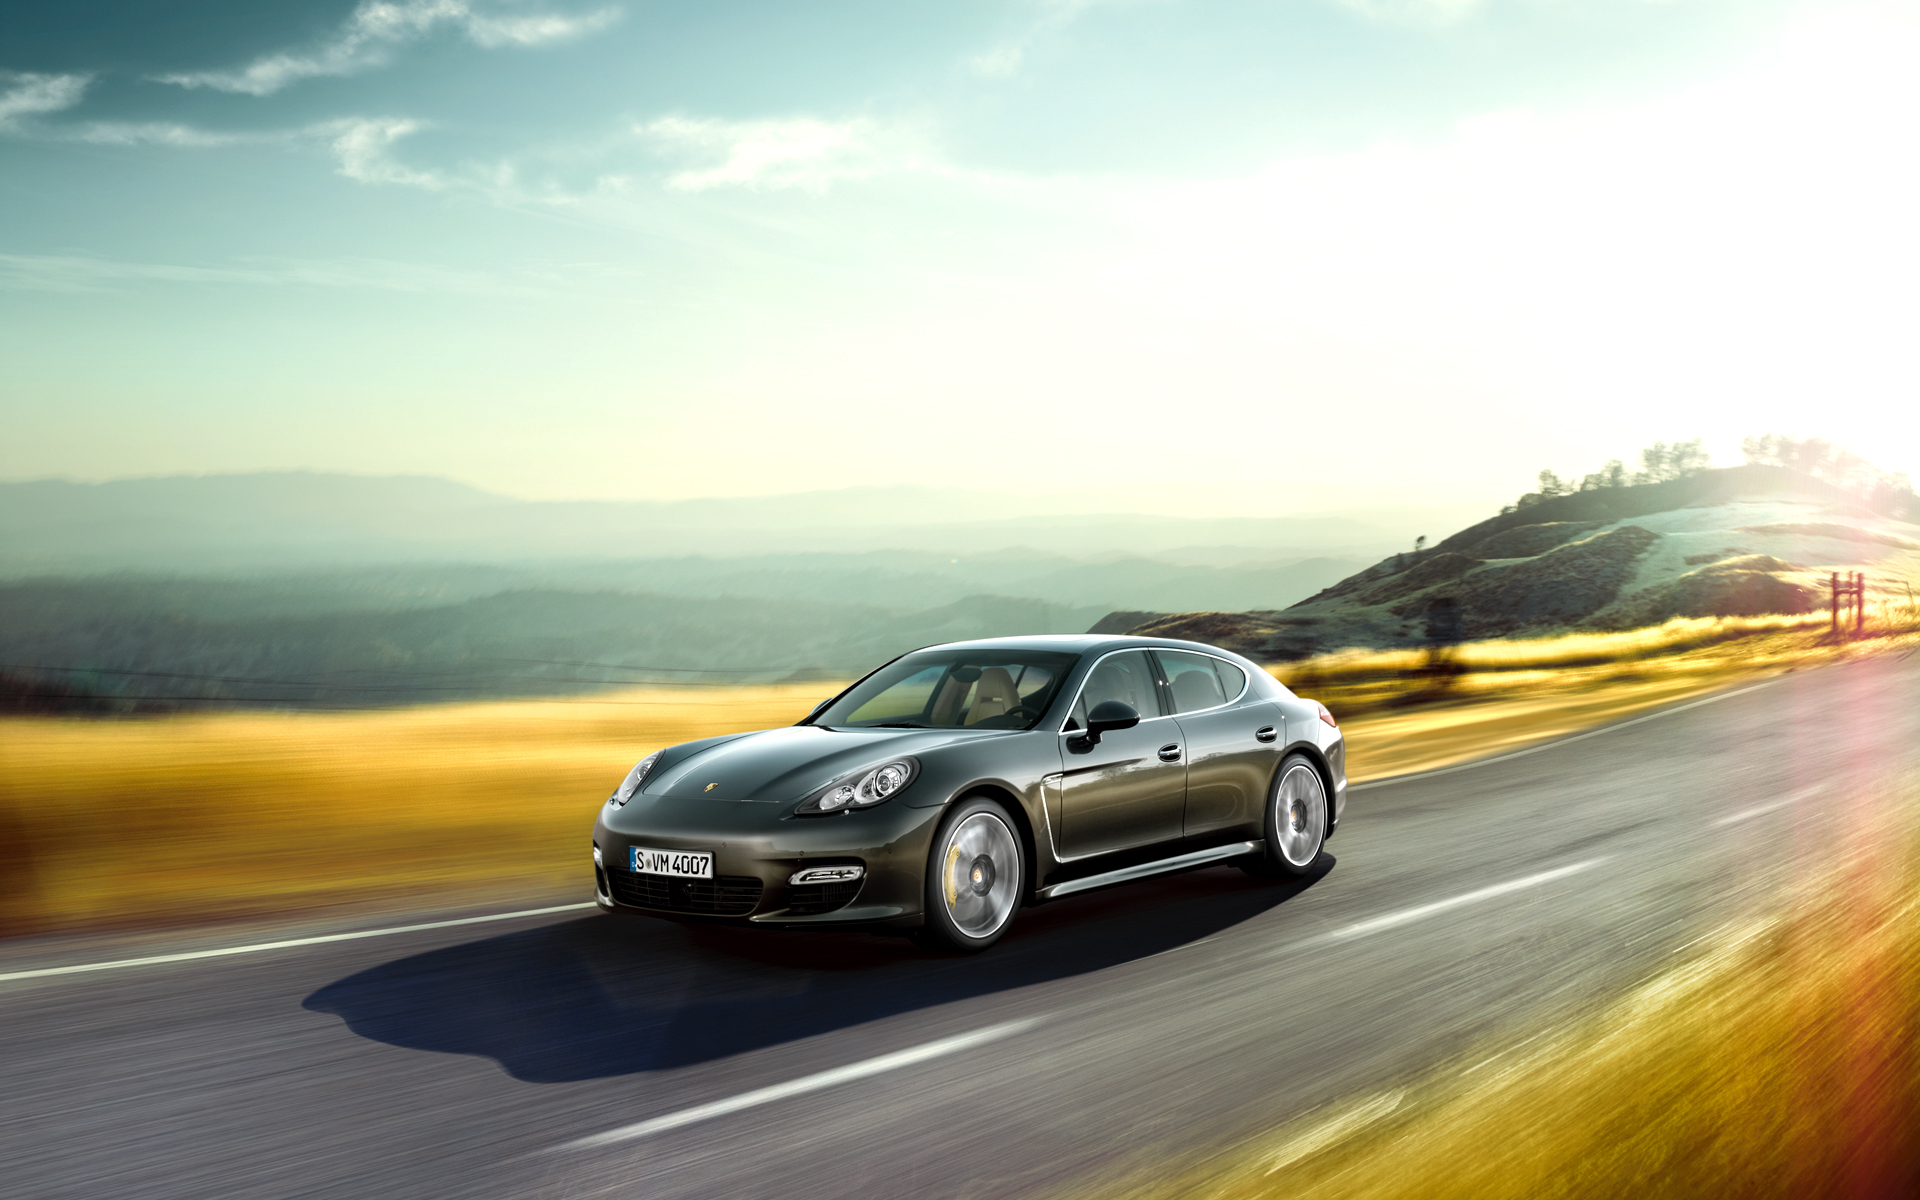 2011 Panamera Turbo S wallpapers